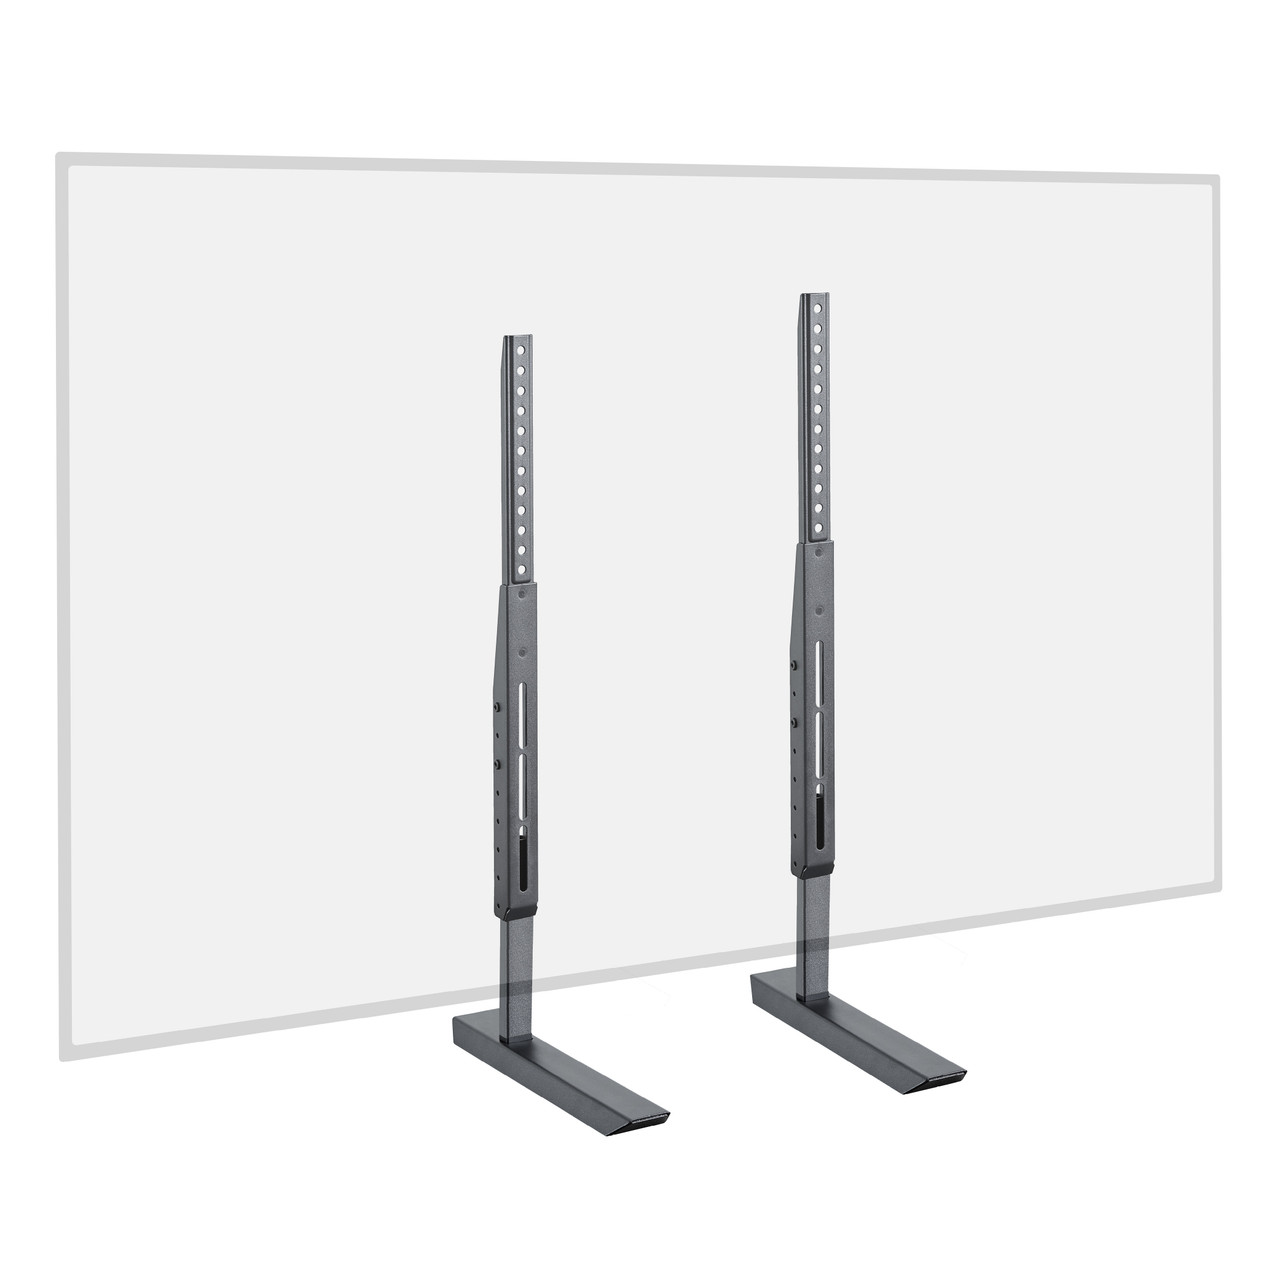 replacement tv legs for Sony or Samsung